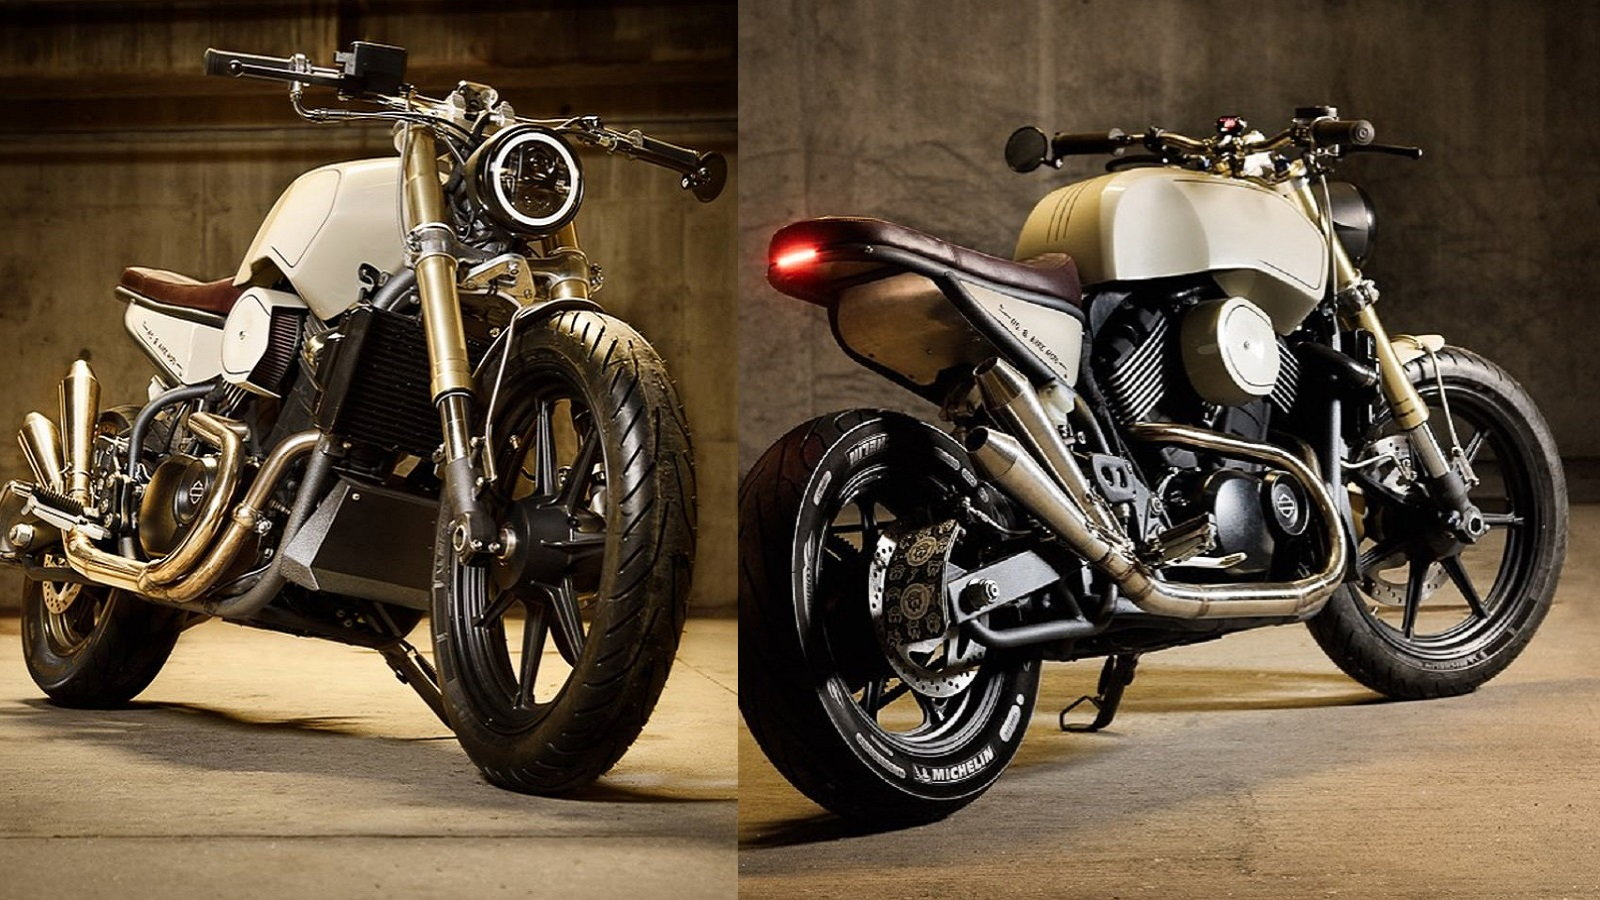 Cafe Racer Street 750 Makes Me Eat My Words